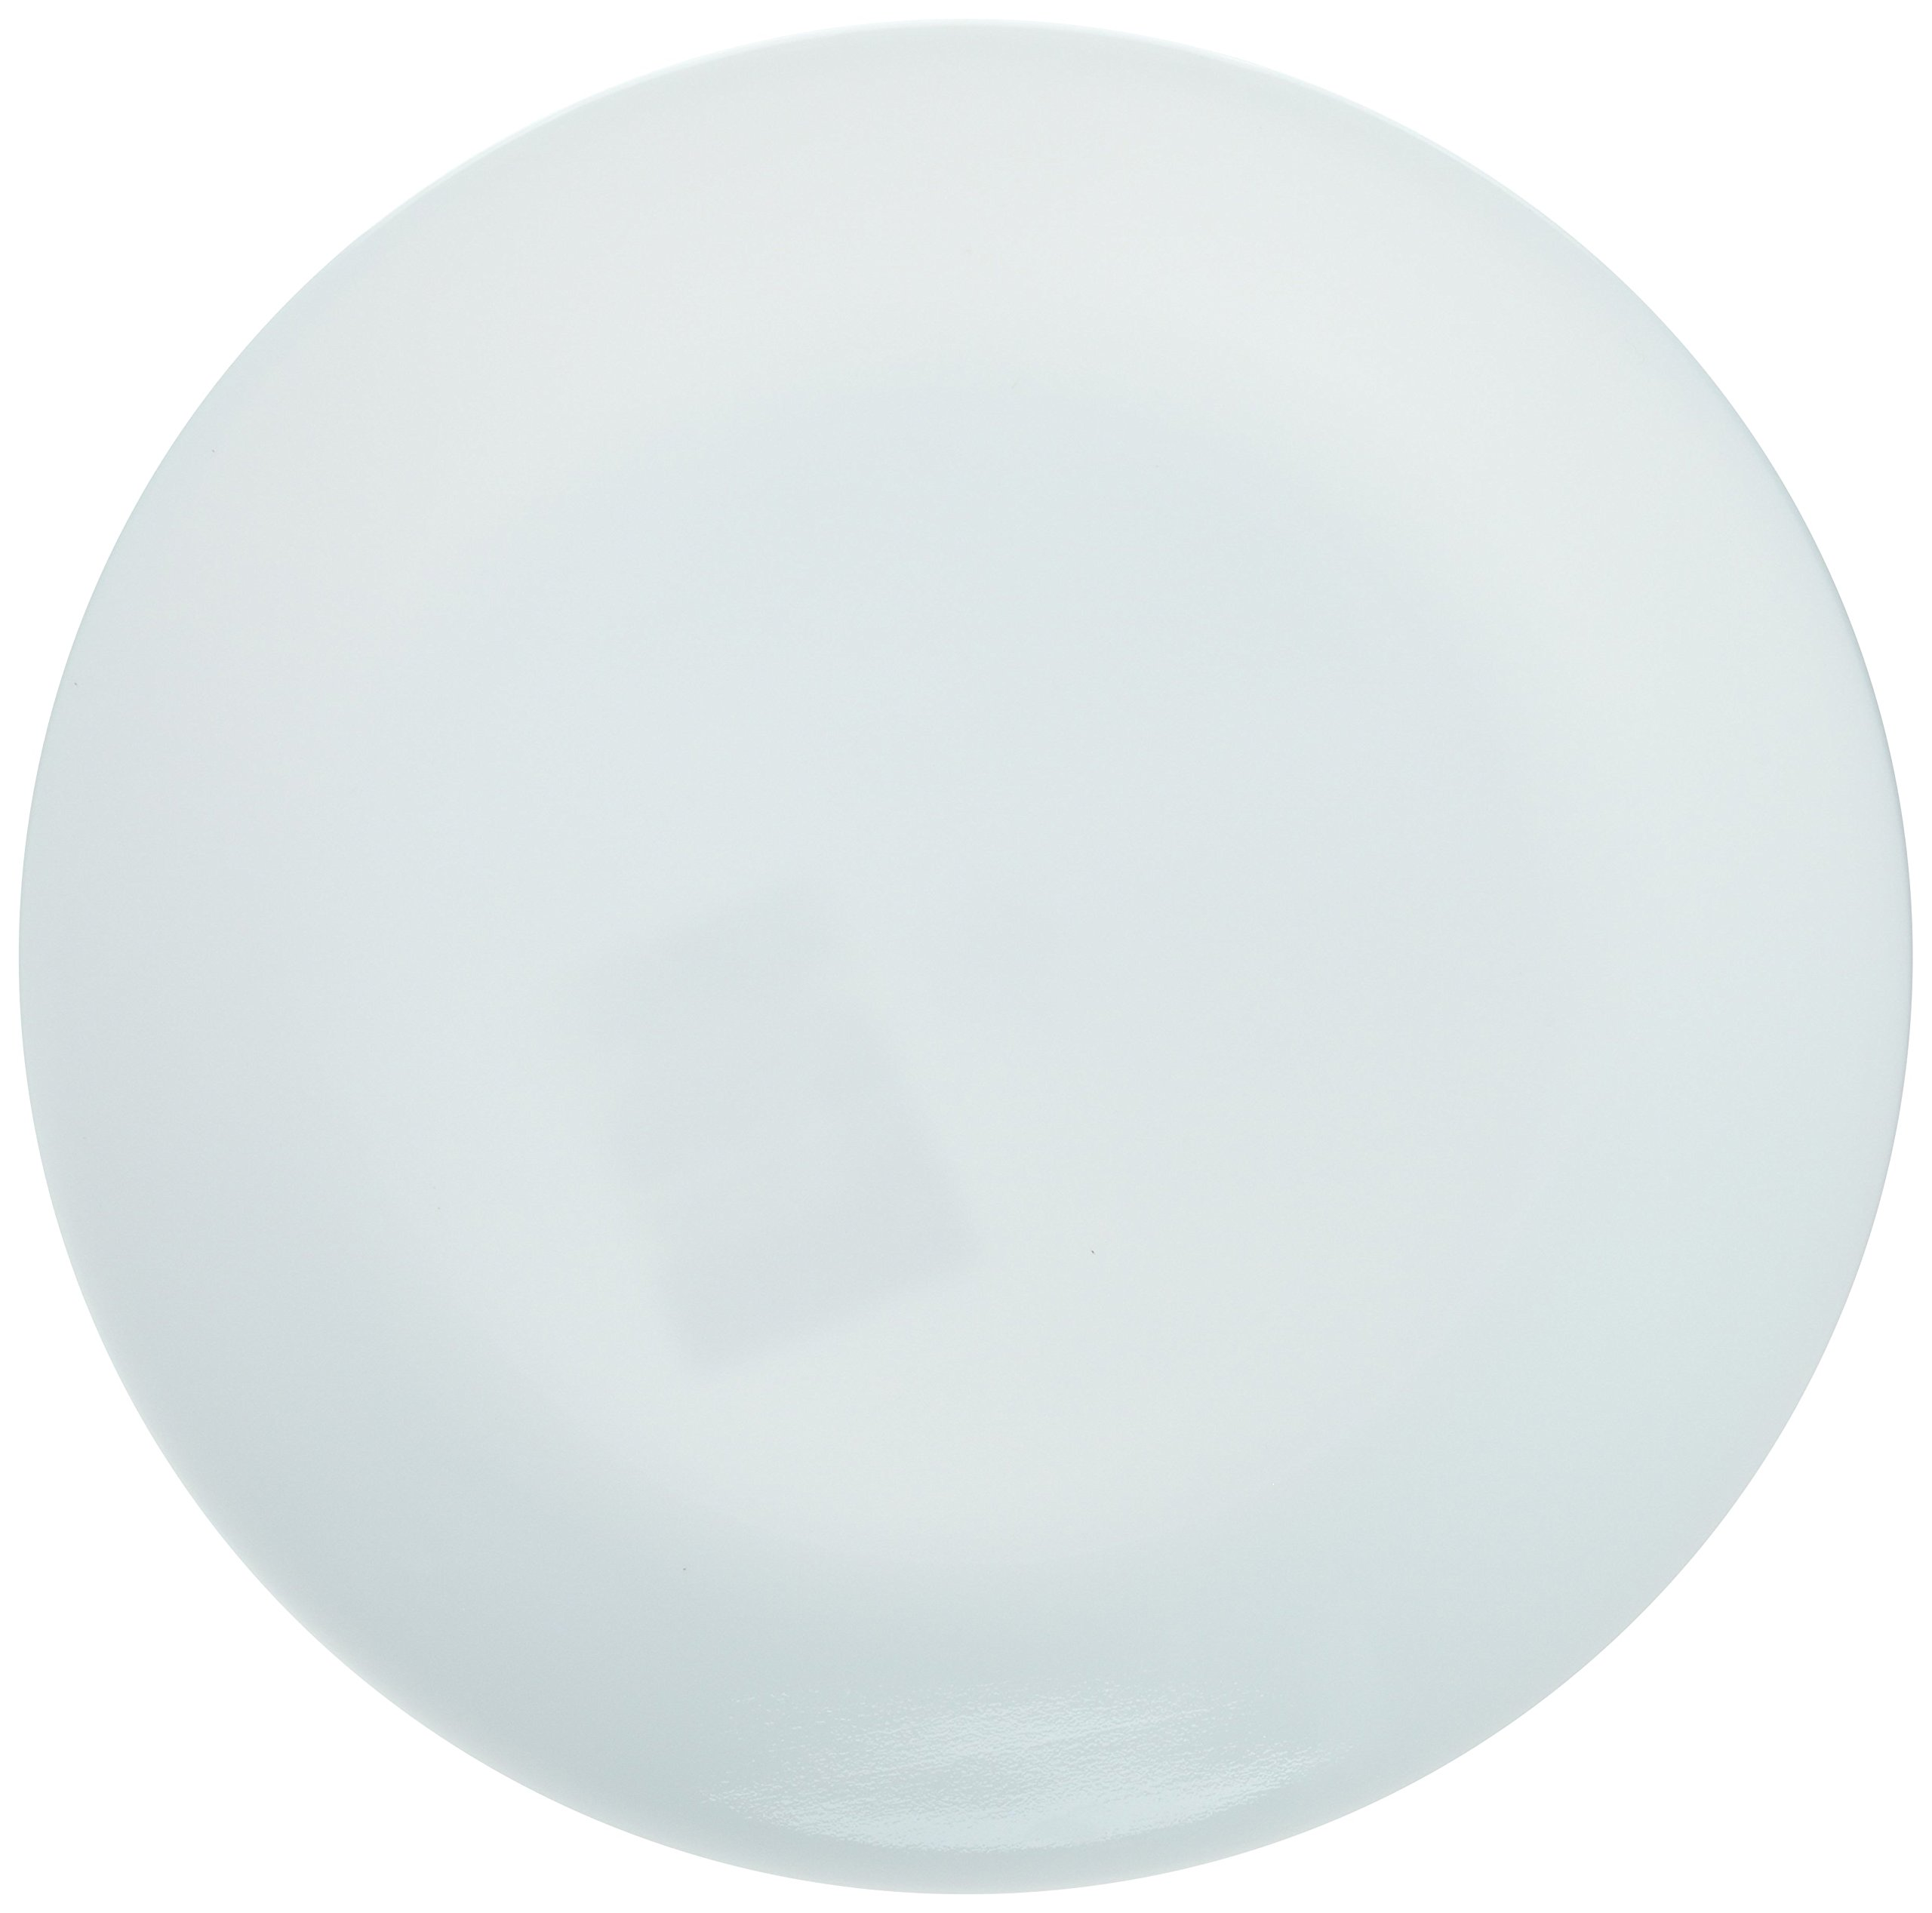 Corelle Winter Frost Plates White Dinner 10-1/4'' Dia. (Pack of 6)